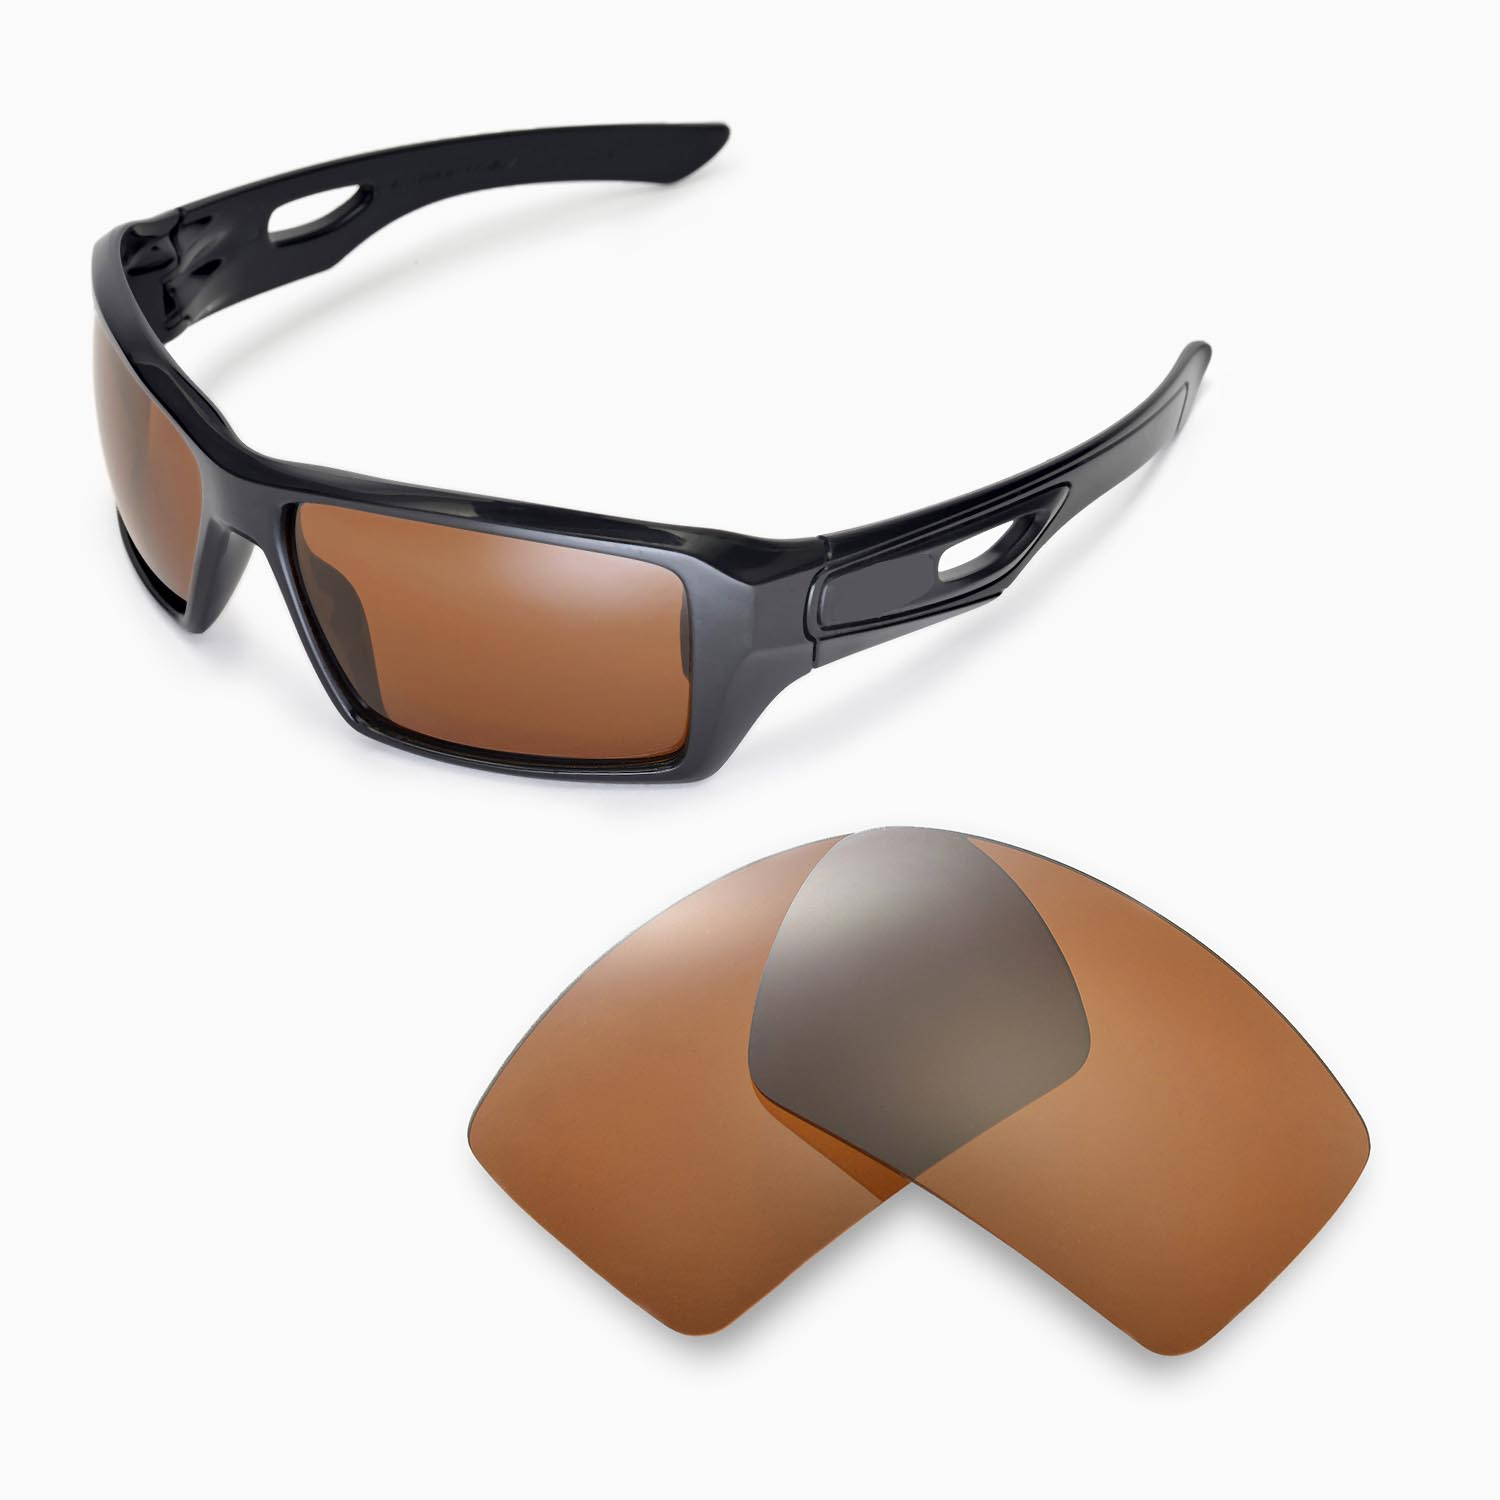 3cc520999c7 Details about New WL Polarized Brown Replacement Lenses For Oakley Eyepatch  2 Sunglasses